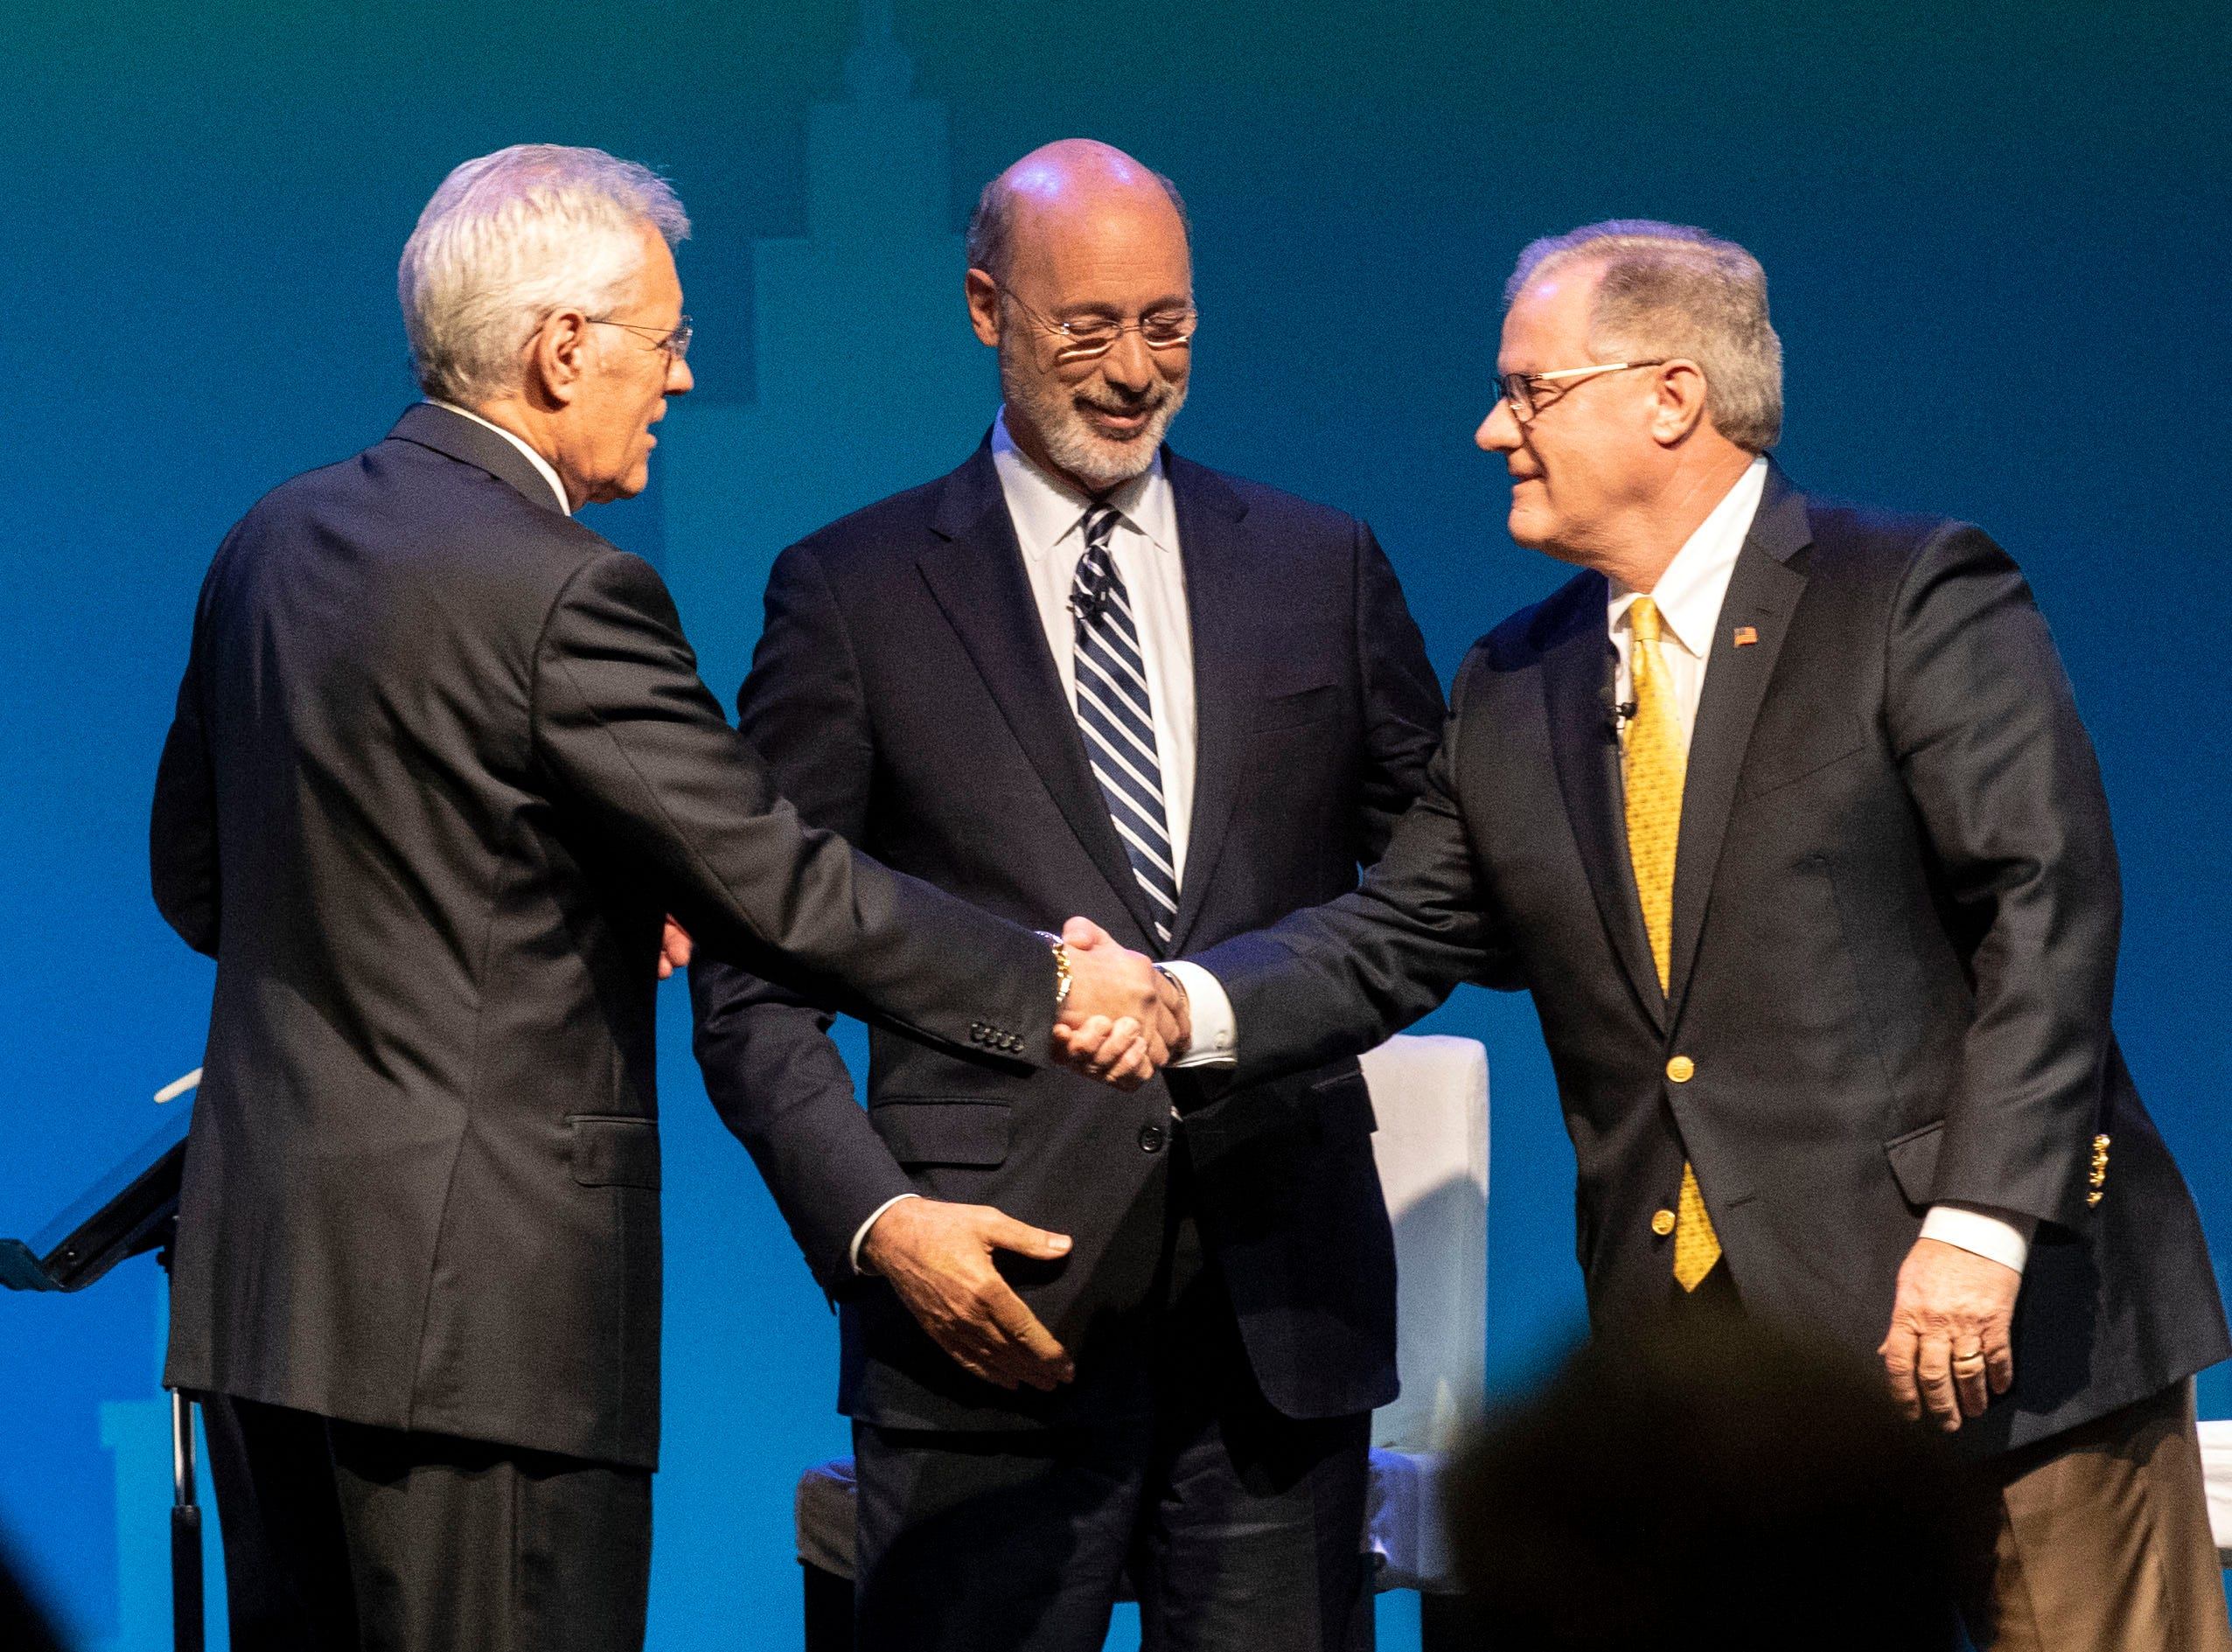 Alex Trebek, who moderated the debate, shakes hands with republican challenger Scott Wagner, right, while incumbent Gov. Tom Wolf waits to shake hands, following the gubernatorial debate at Hershey Lodge, Oct. 1, 2018.